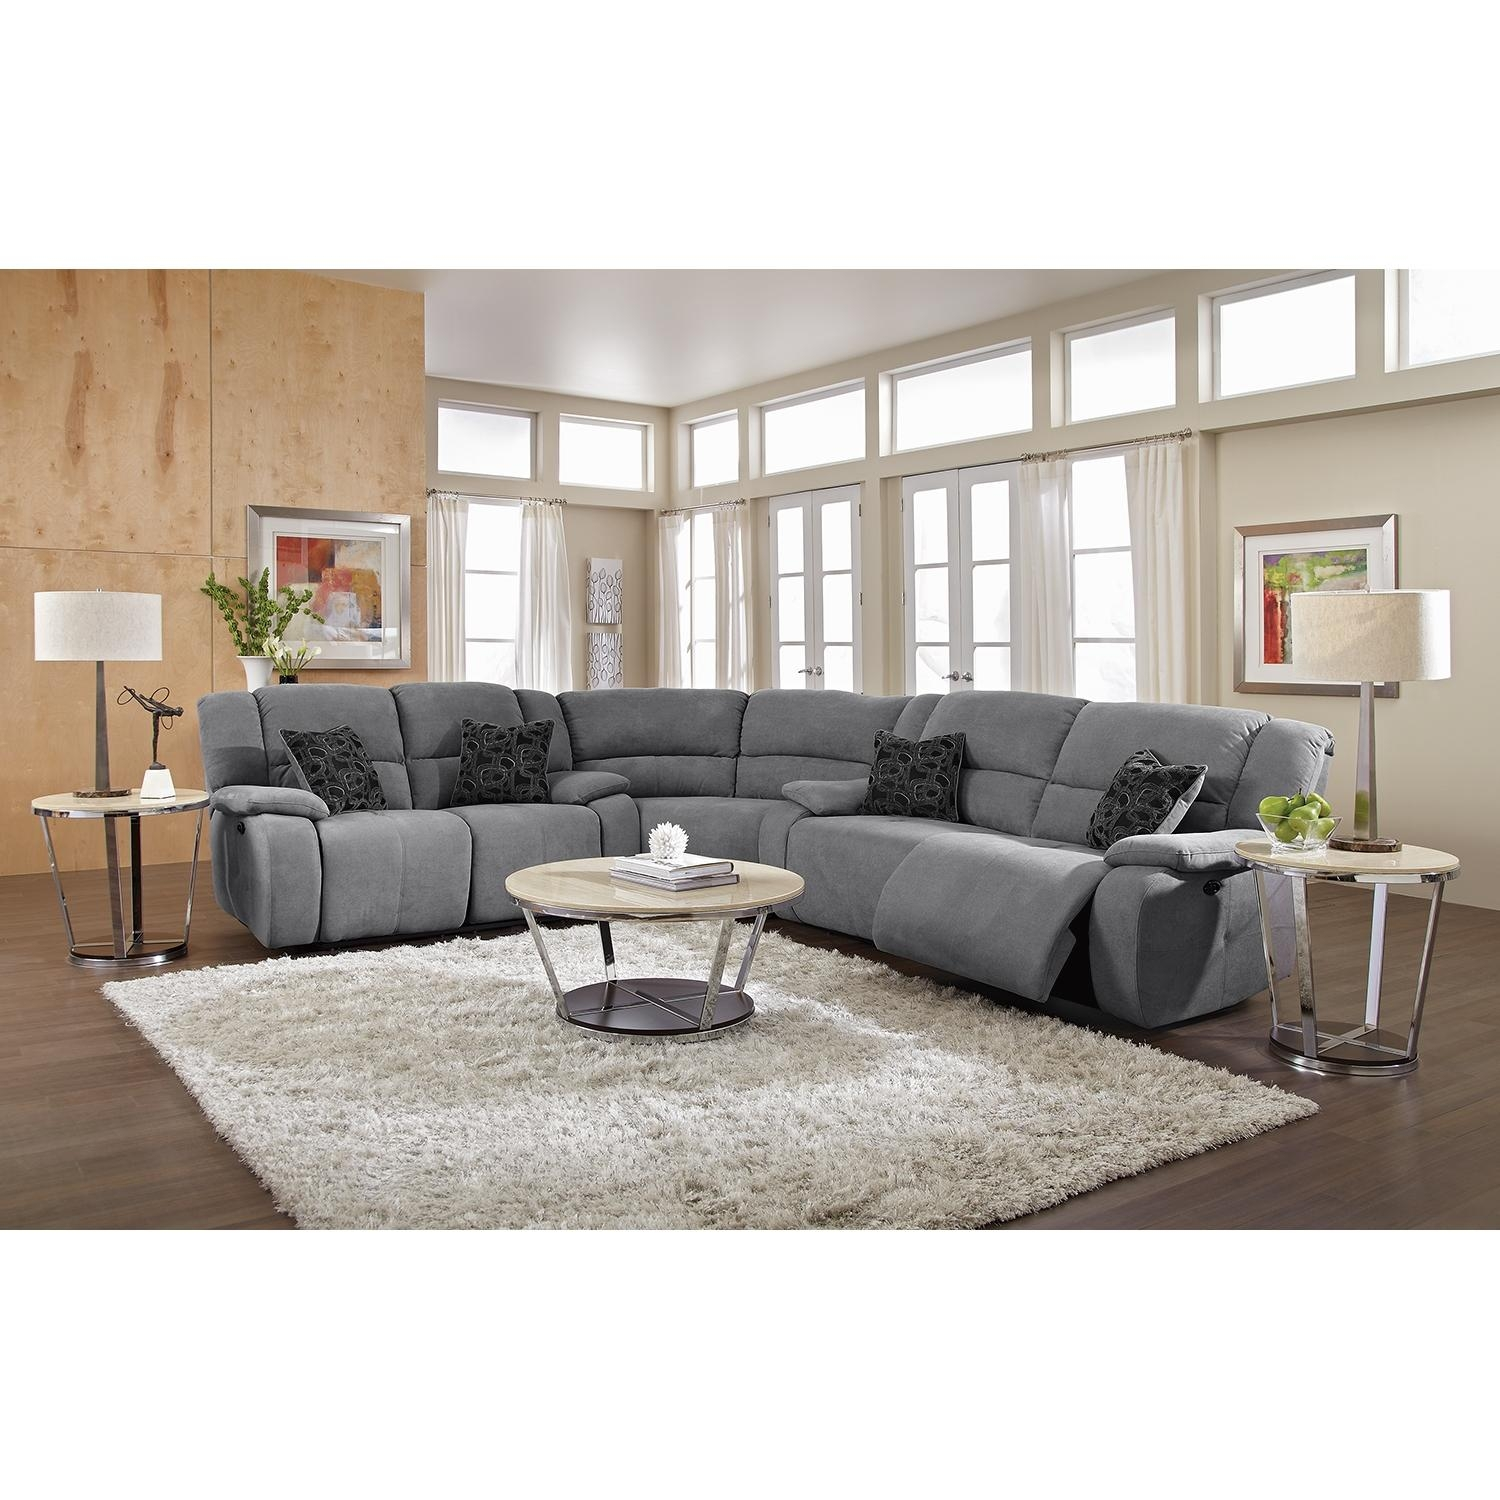 Furniture: Sectional Couches With Recliners | U Shaped Sectional For U Shaped Reclining Sectional (Image 8 of 20)